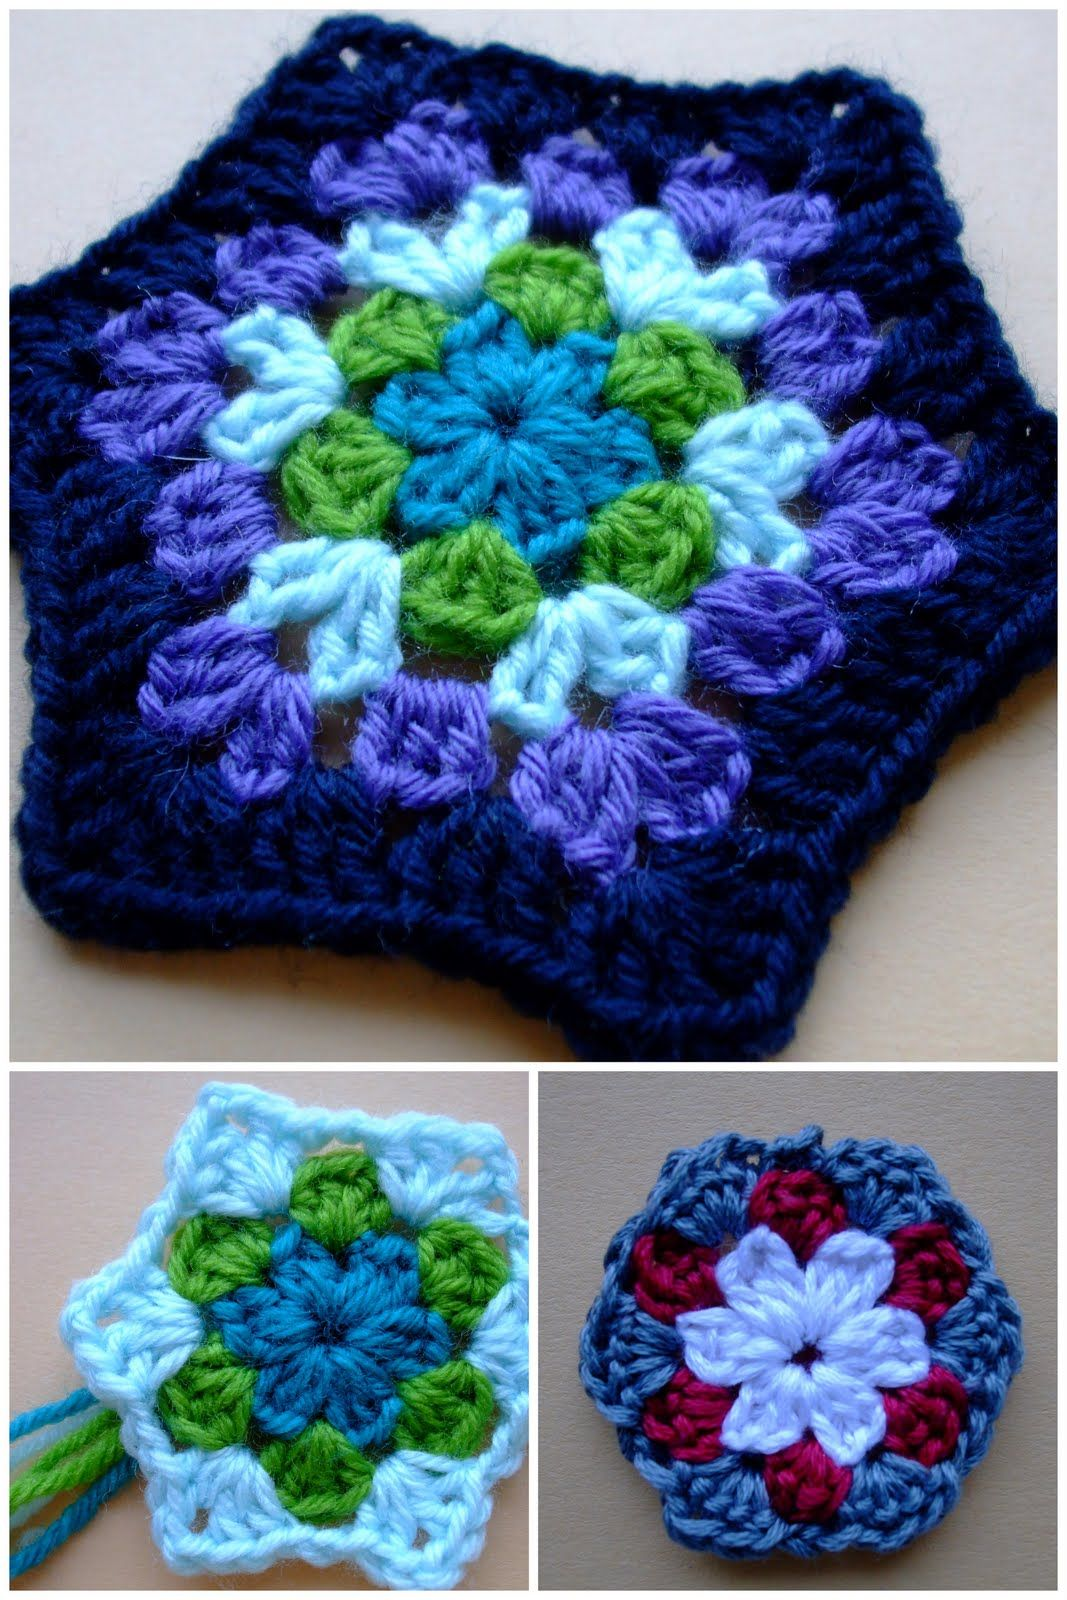 Springtime Hexagon, by Kim of eggbirddesigns. About 4 to 4.5 inche ...